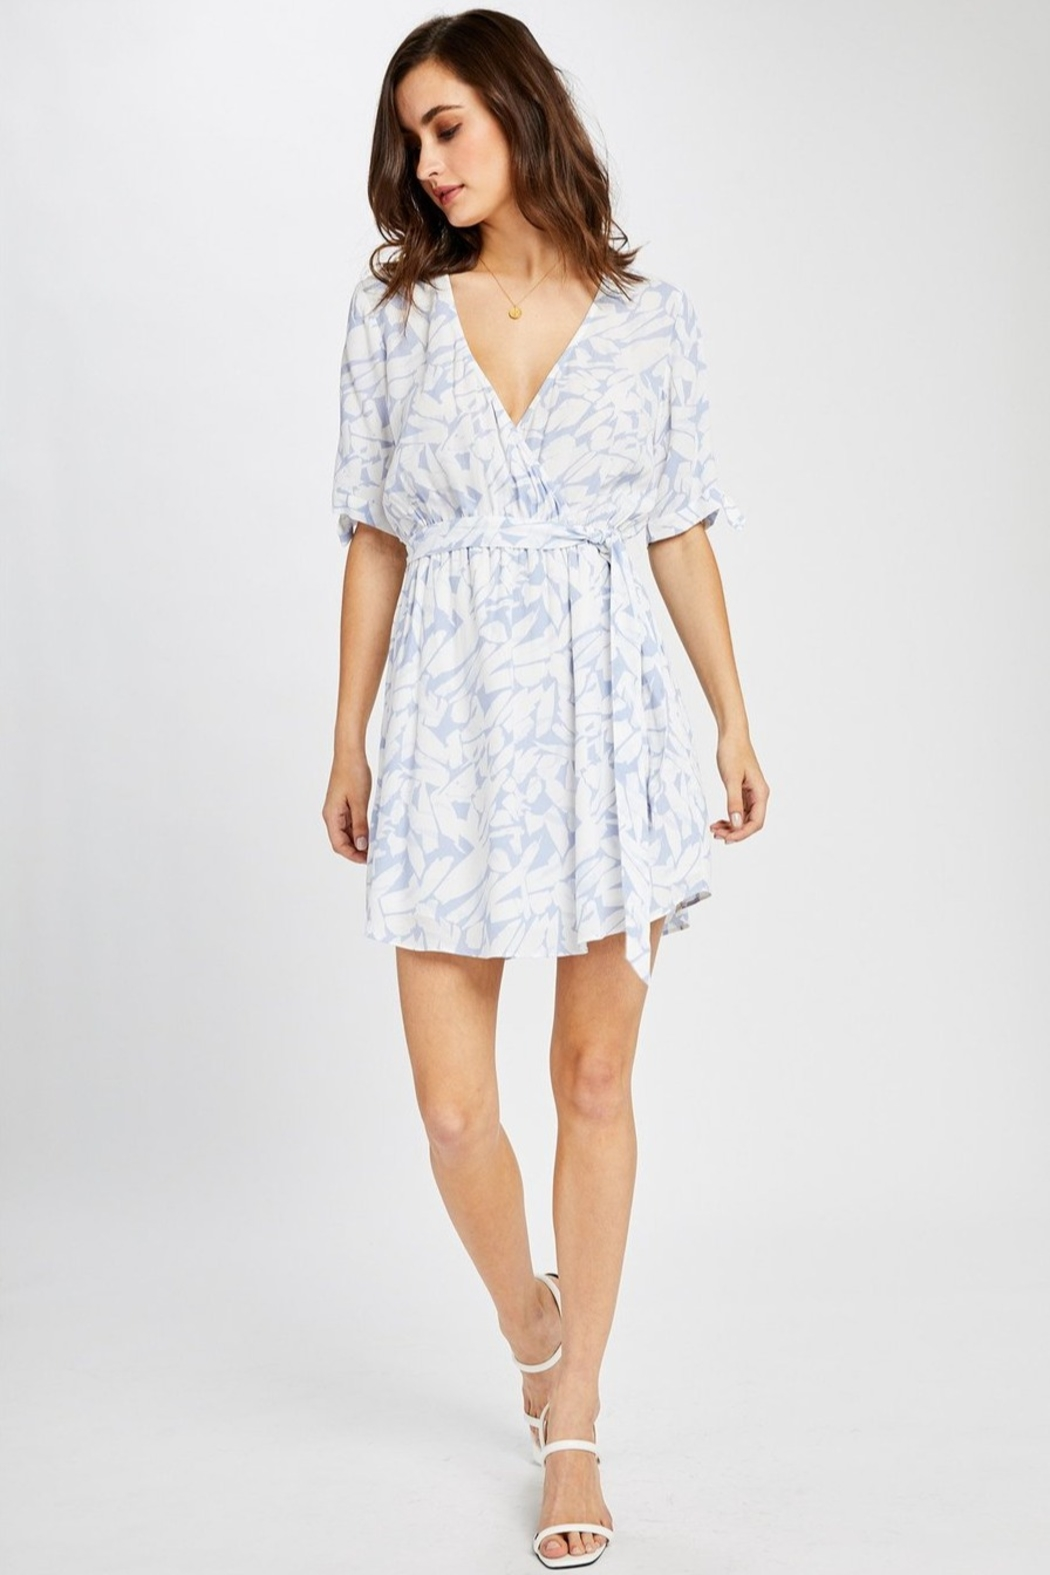 Gentle Fawn Bliss Dress - Front Cropped Image